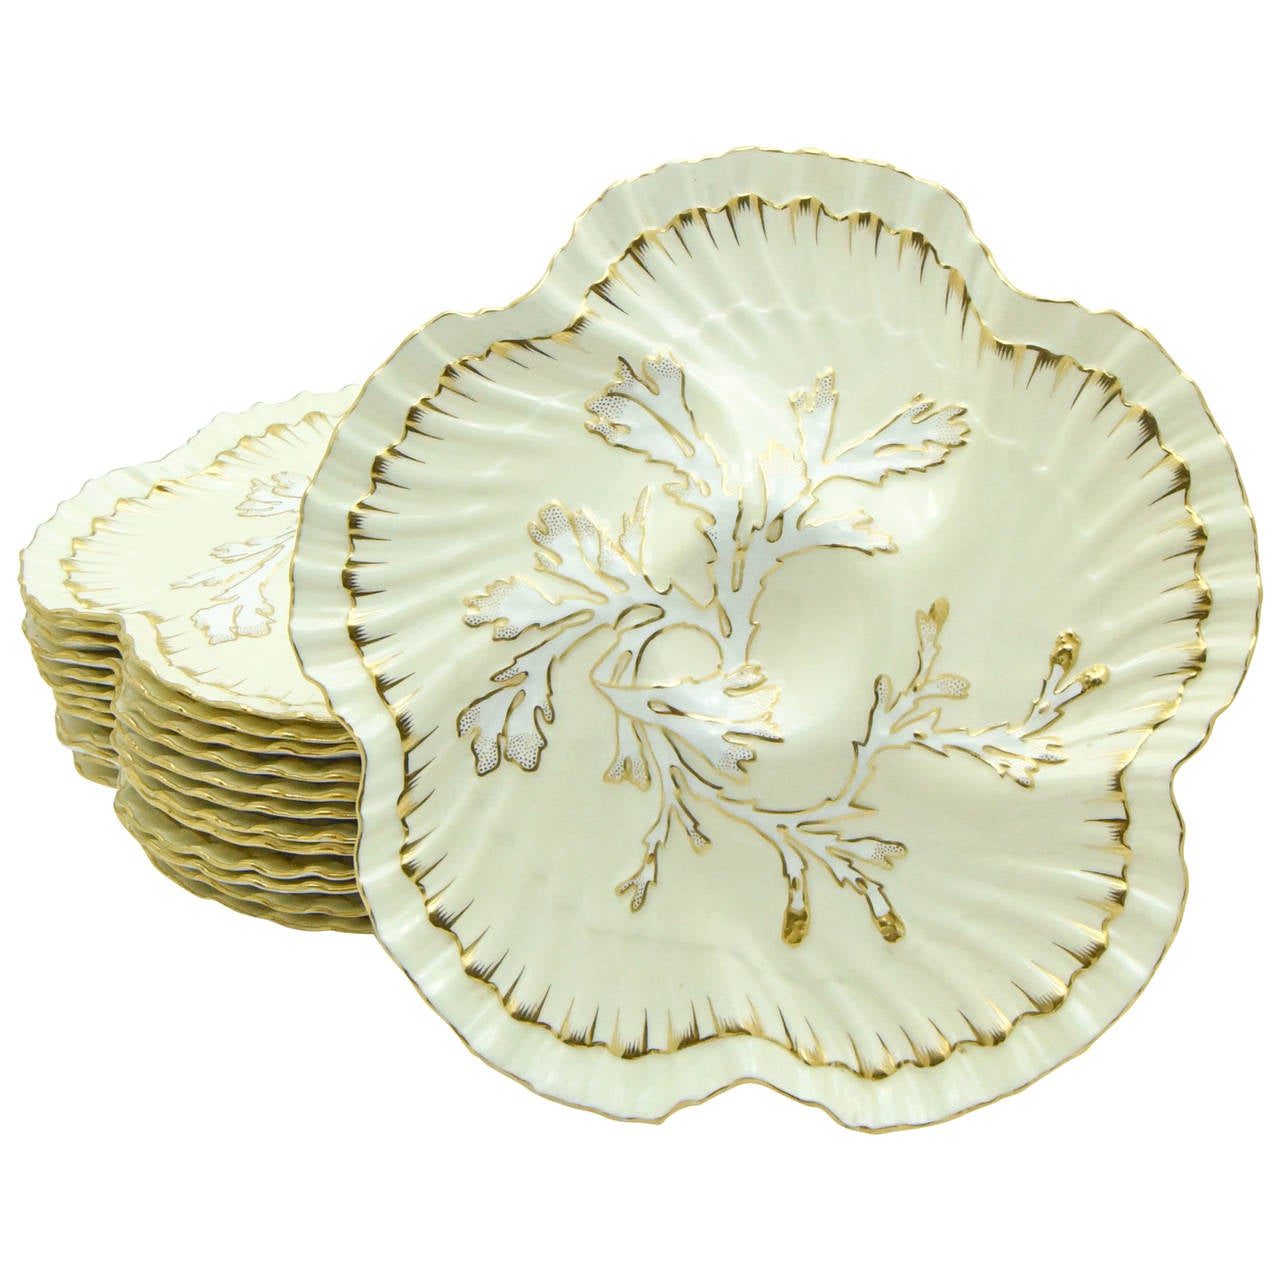 Set of 12 19th c. Brownfield's for Tiffany Ivory & Gold Coral Reef Oyster Plates For Sale